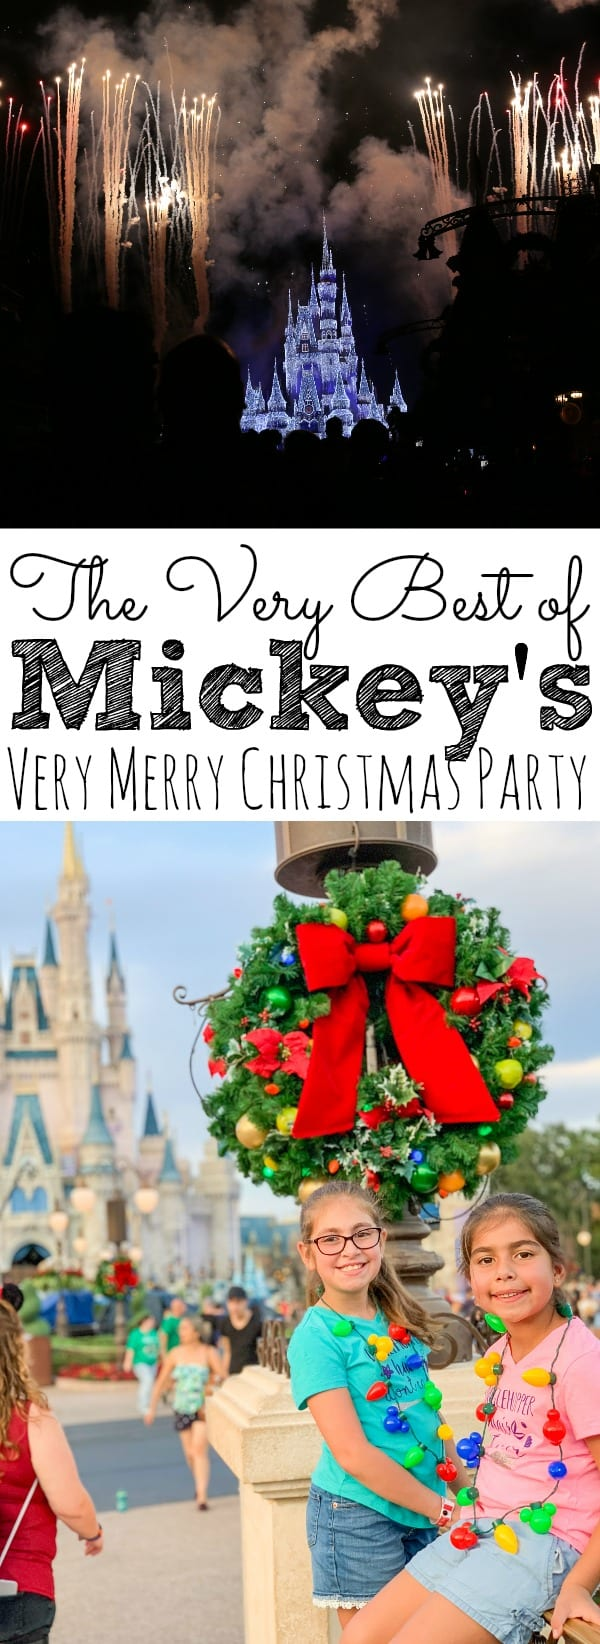 The Best Parts of Mickey's Very Merry Christmas